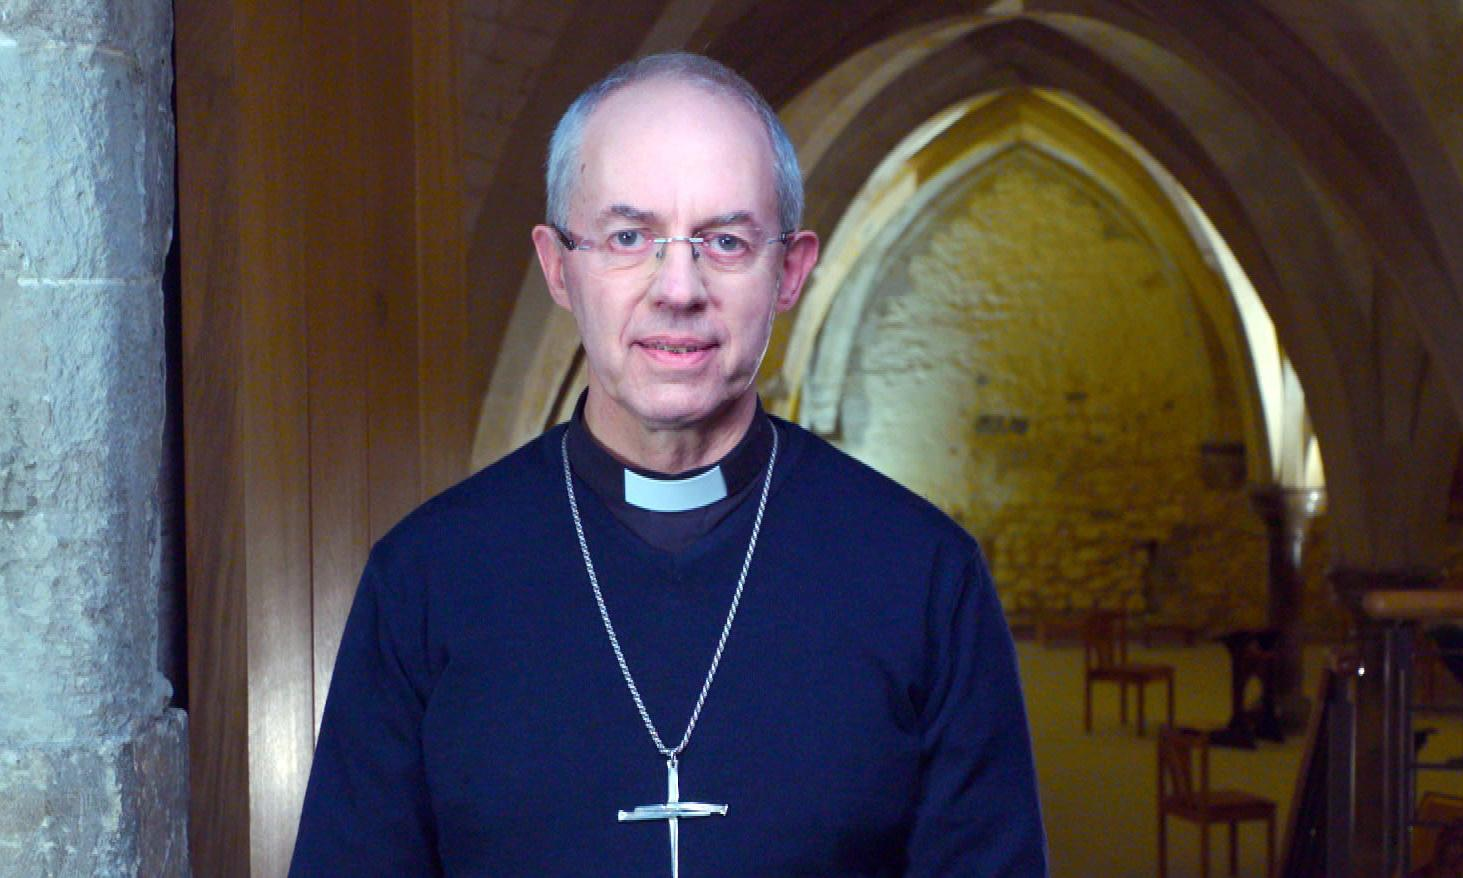 Archbishop of Canterbury says he may chair Brexit citizens' forum